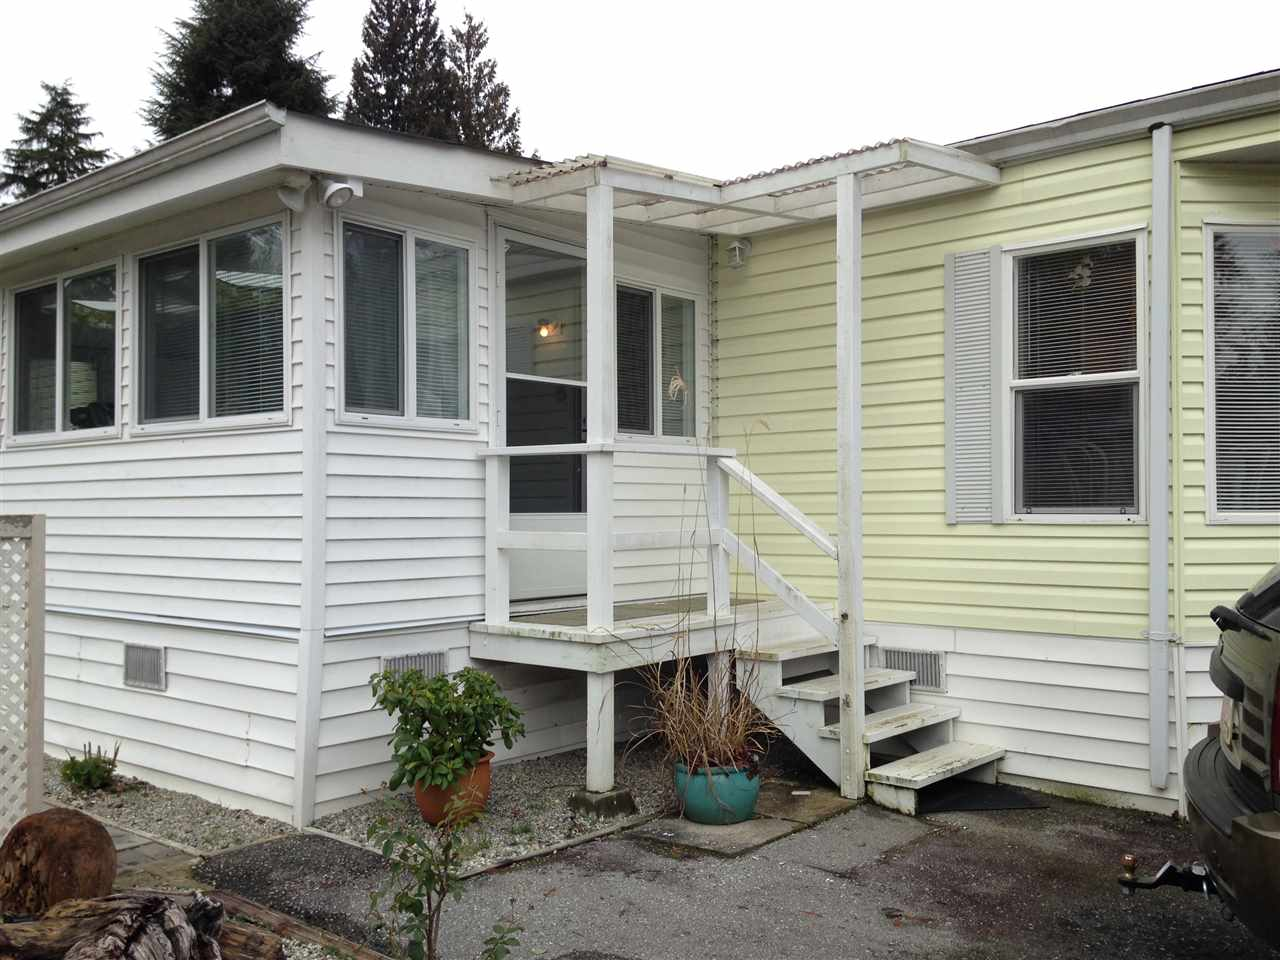 Photo 14: Photos: 14 4496 SUNSHINE COAST Highway in Sechelt: Sechelt District Manufactured Home for sale (Sunshine Coast)  : MLS® # R2032496